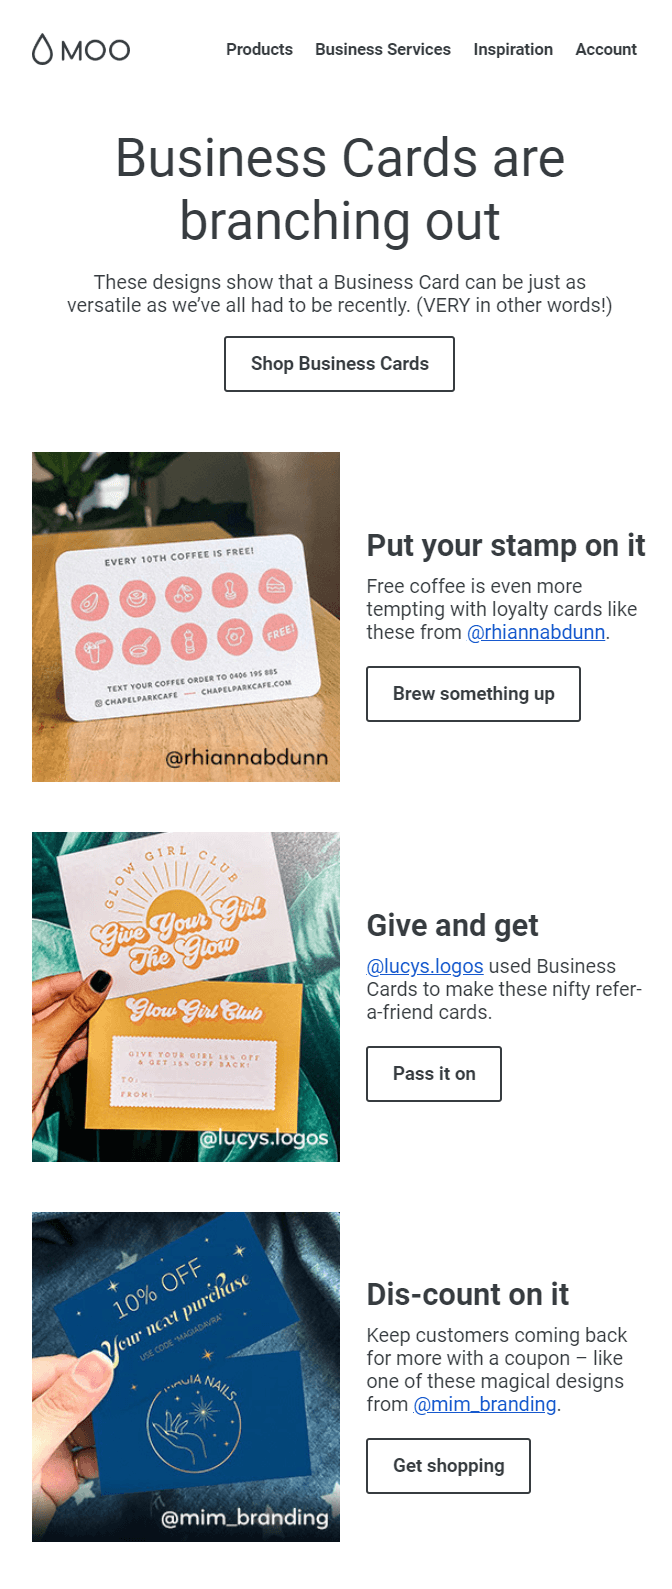 User-generated content in ecommerce marketing